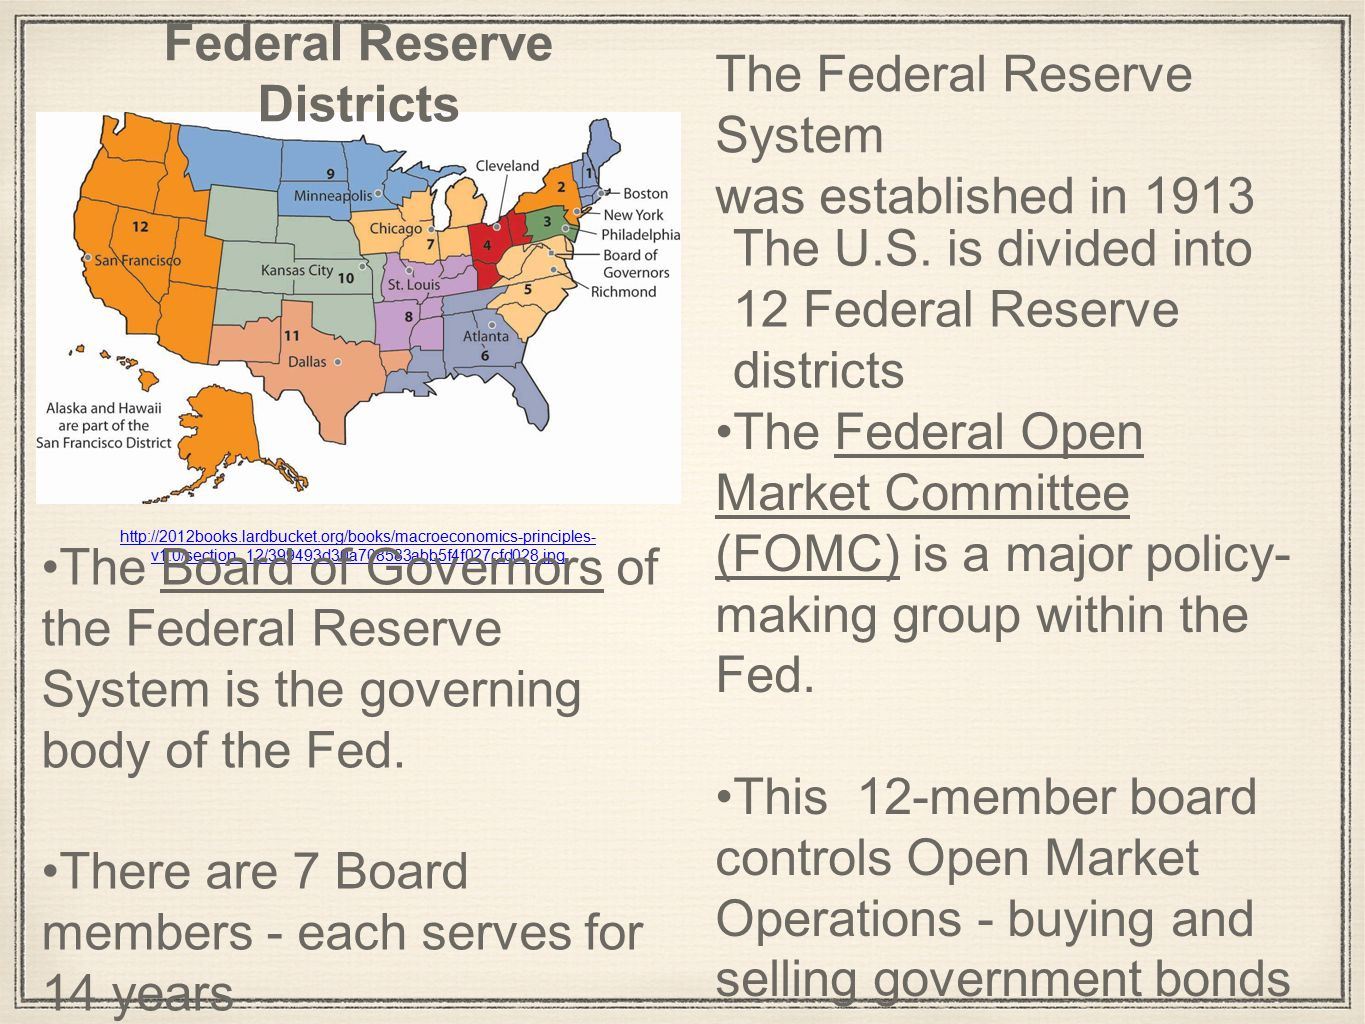 v1.0/section_12/399493d30a708583abb5f4f027cfd028.jpg Federal Reserve Districts The Federal Reserve System was established in 1913 The Board of Governors of the Federal Reserve System is the governing body of the Fed.